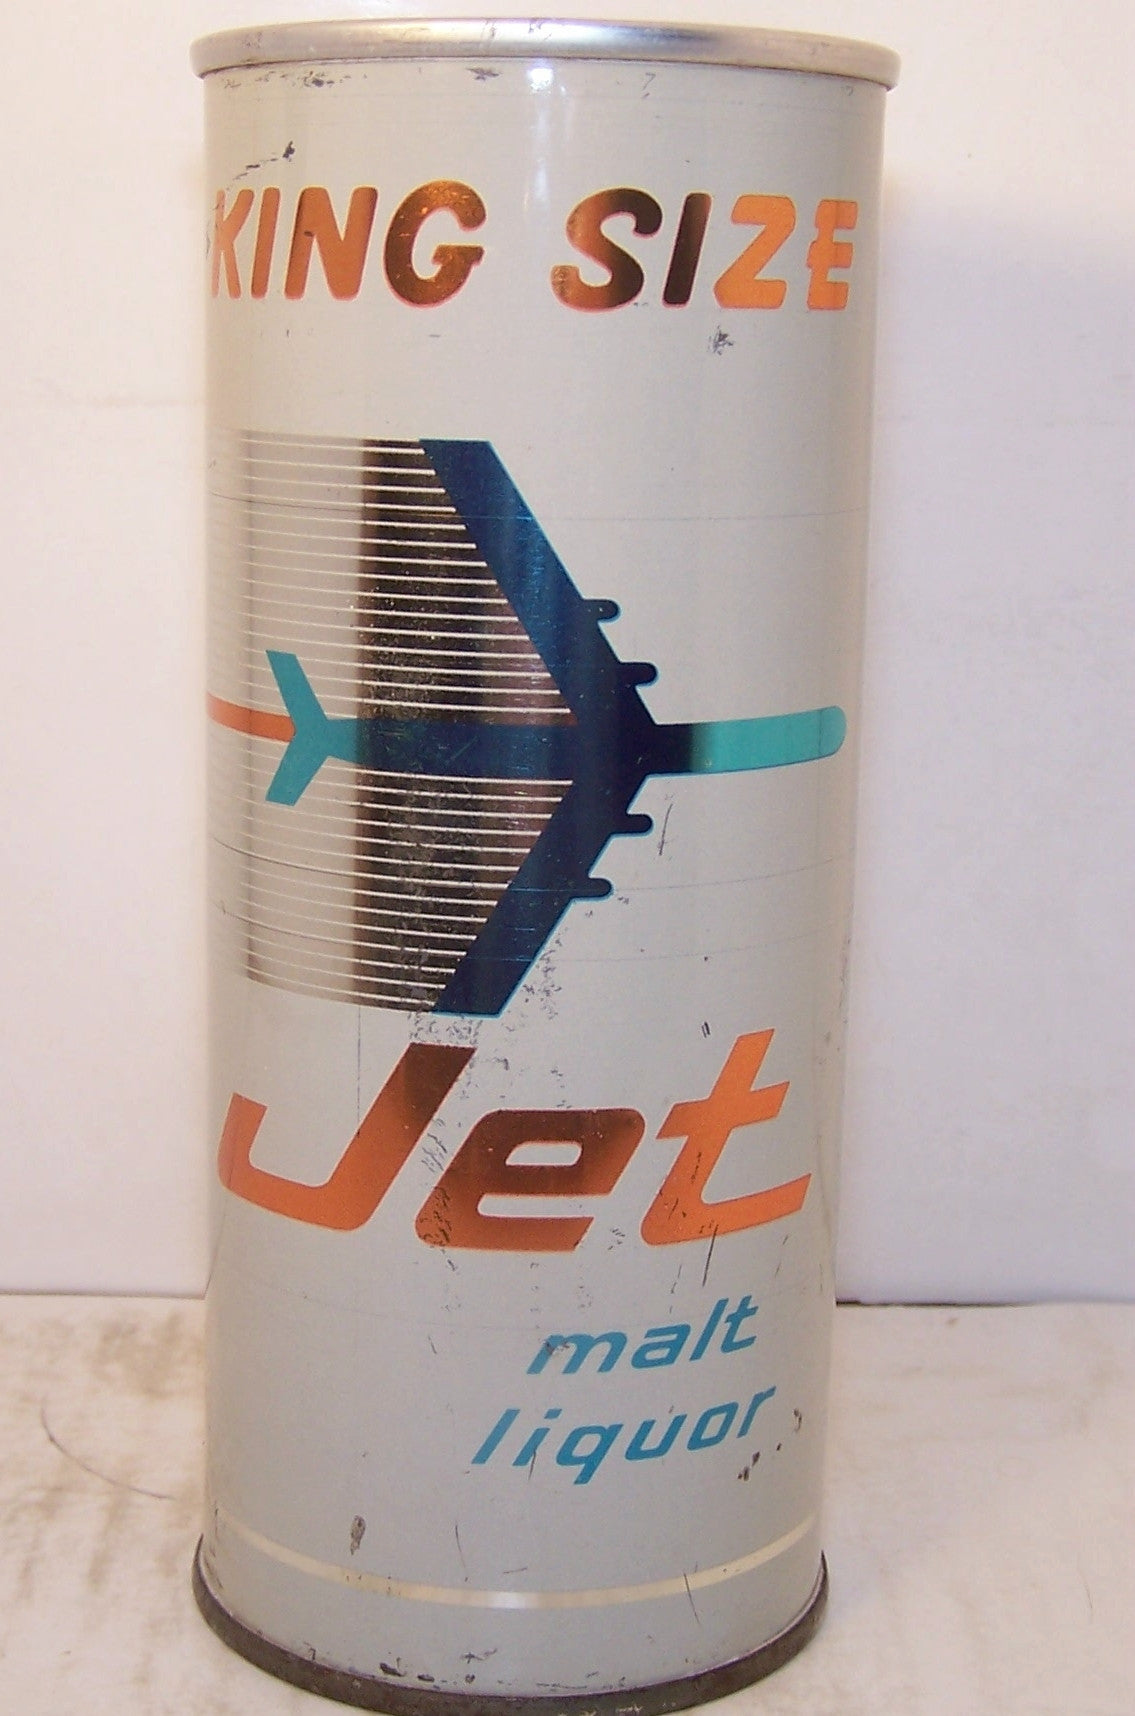 Jet Malt Liquor, USBC II 154-5, Grade 1/1- Sold on 9/1/15